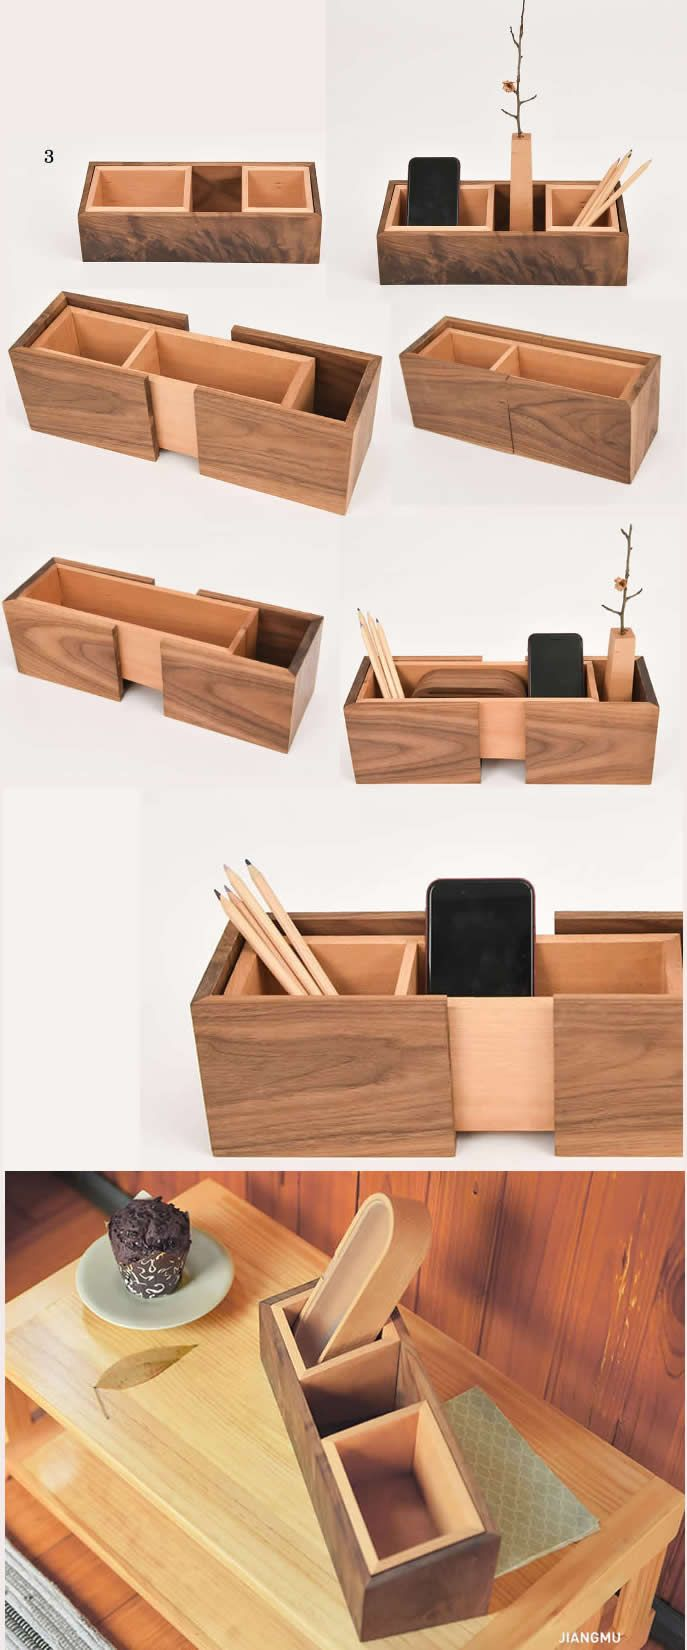 Creative Diy Desk Organizer Ideas To Make Your Desk Cute Bamboo Wooden Office Desk Organizer Desk Organization Desk Organization Diy Small Desk Organization